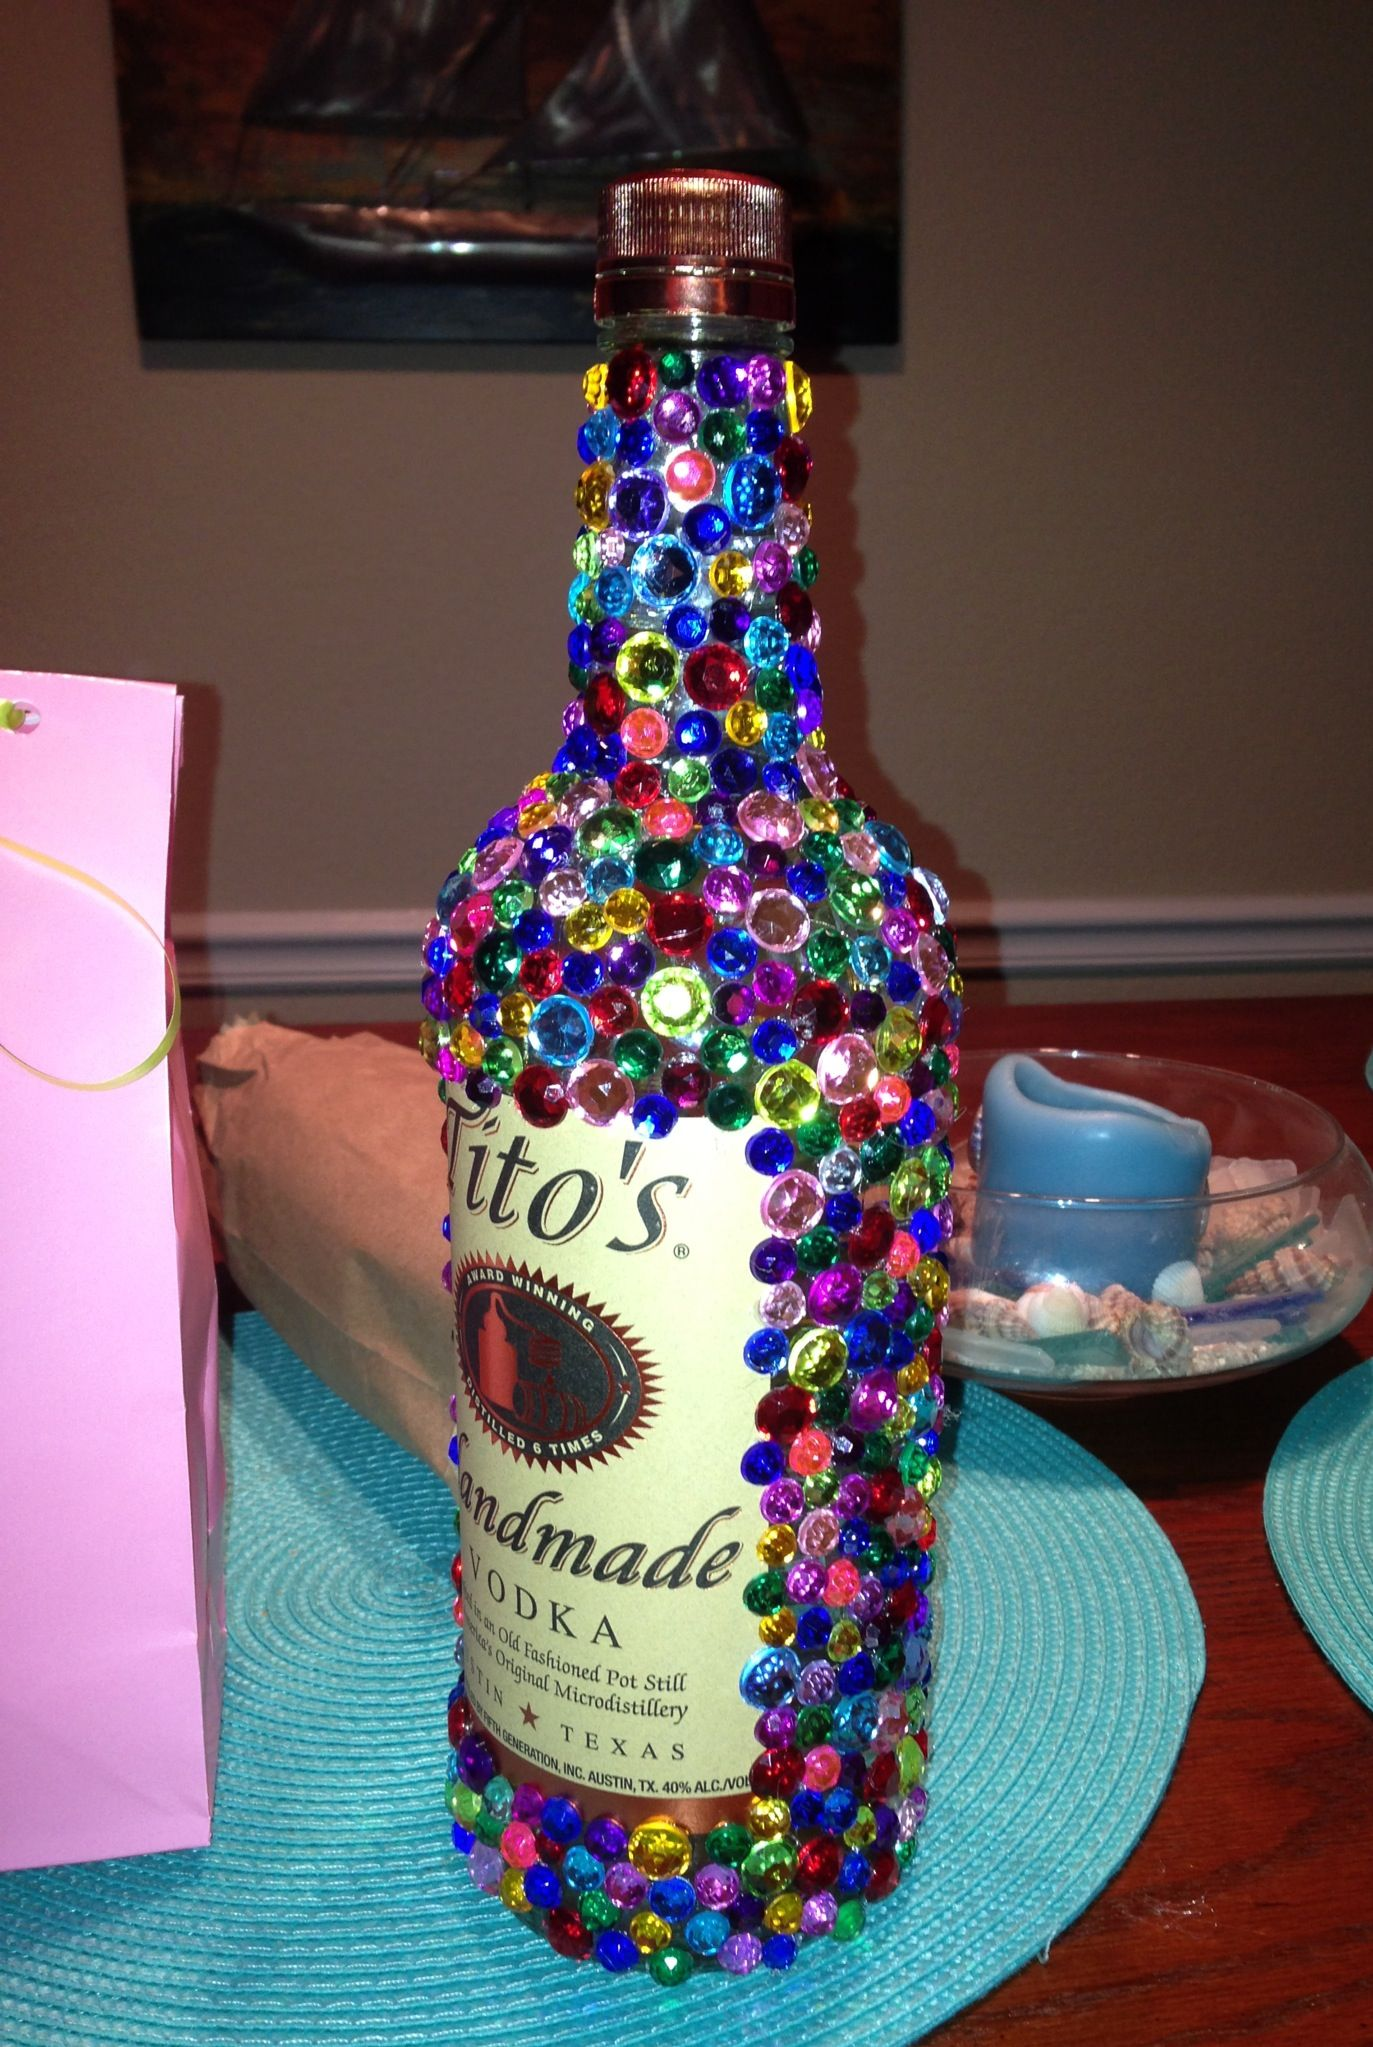 BEDAZZLED ALCOHOL BOTTLE Gift Idea For A 21st Birthday Included Hangover Kit Too Water Aspirin Gum And Mouthwash